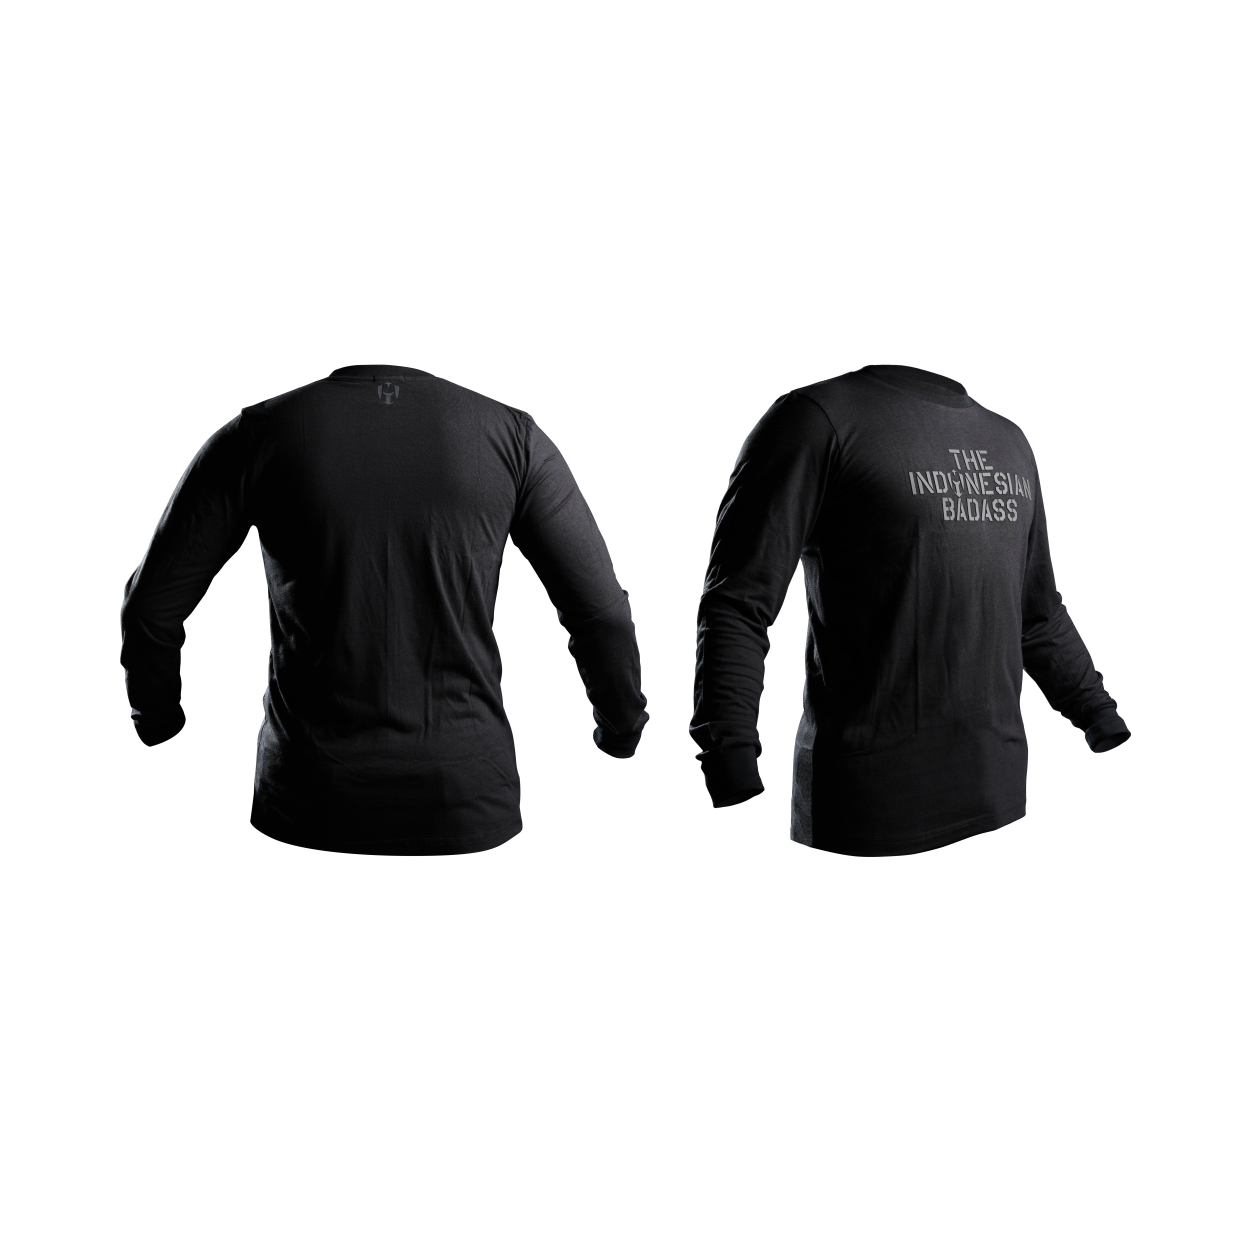 The Indonesian Badass HD Long Sleeve